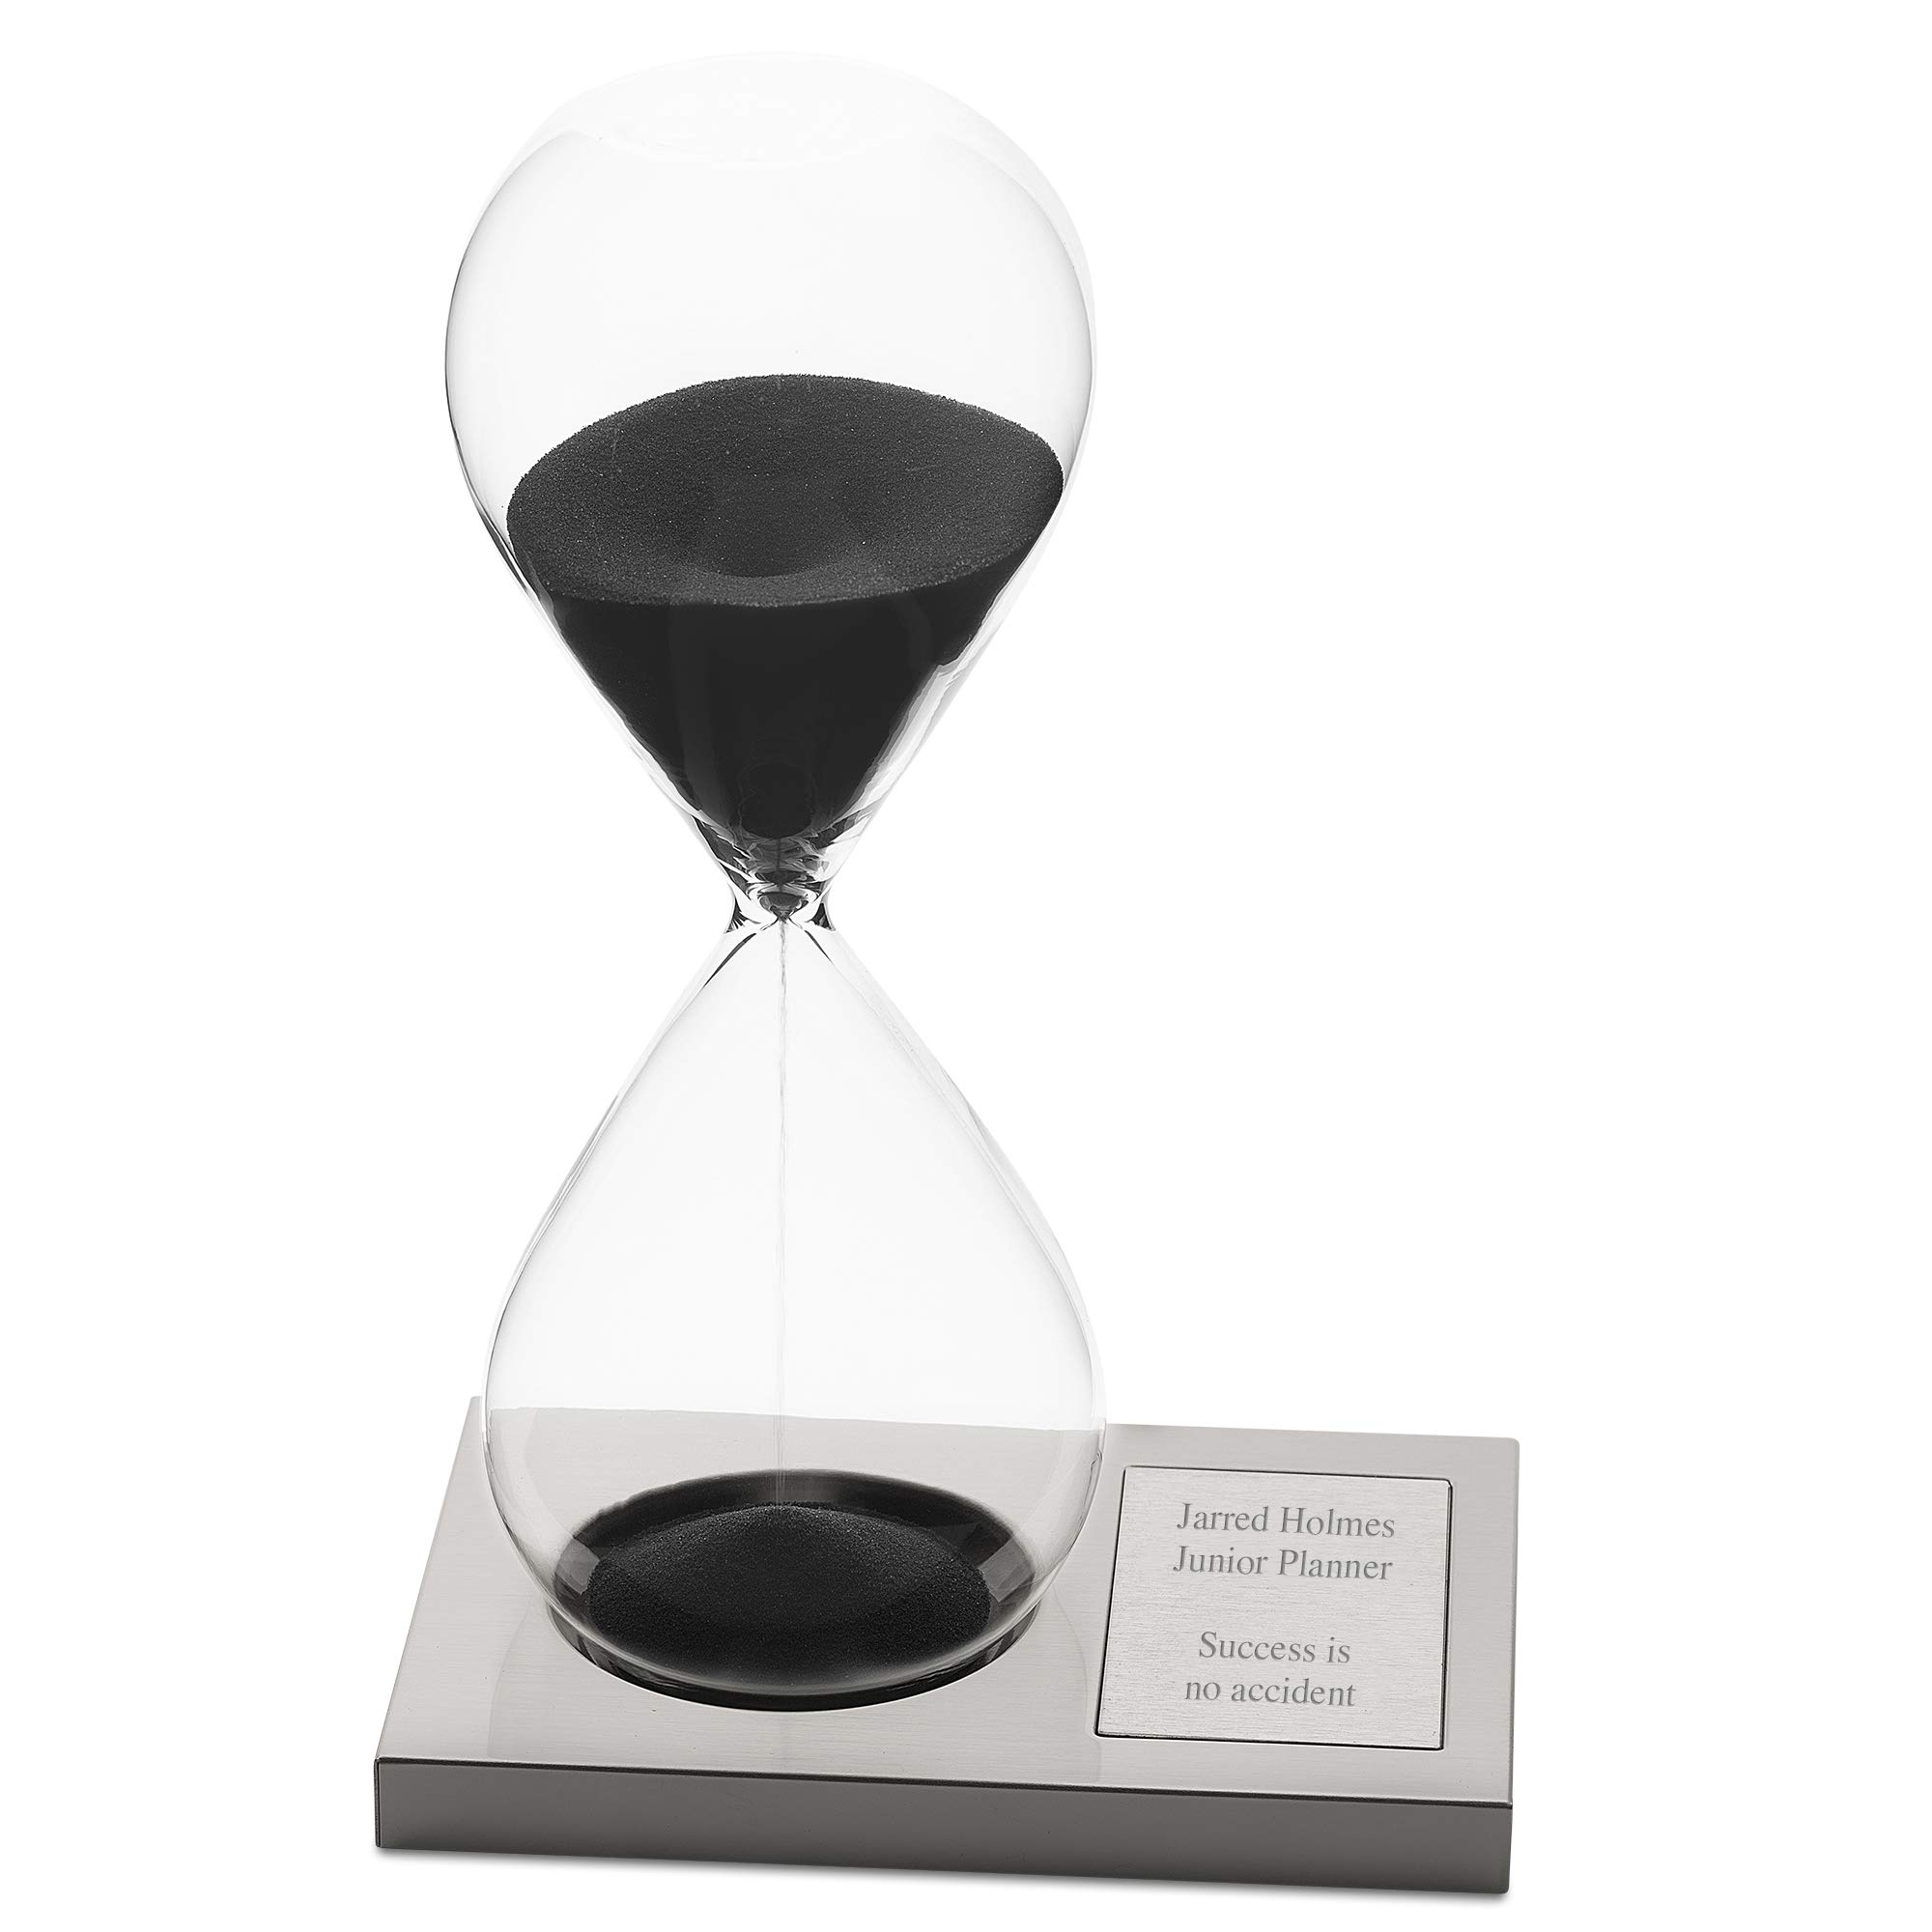 Things Remembered Personalized 30 Minute Hourglass Timer with Engraving Included by Things Remembered